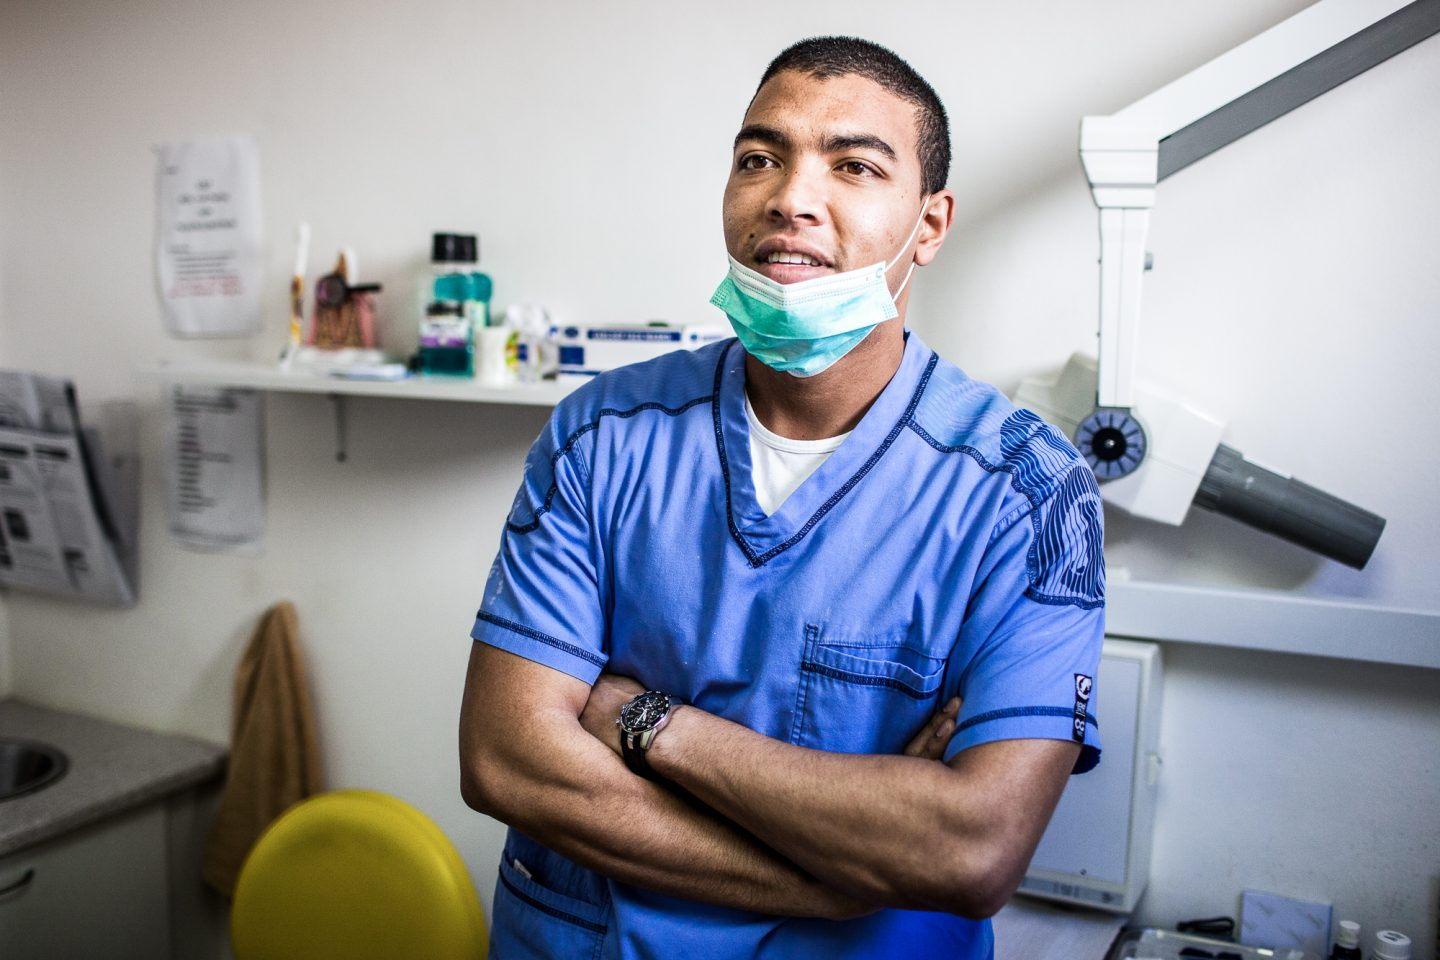 Ryan Müller is a dentist in Cape Town, South Africa.